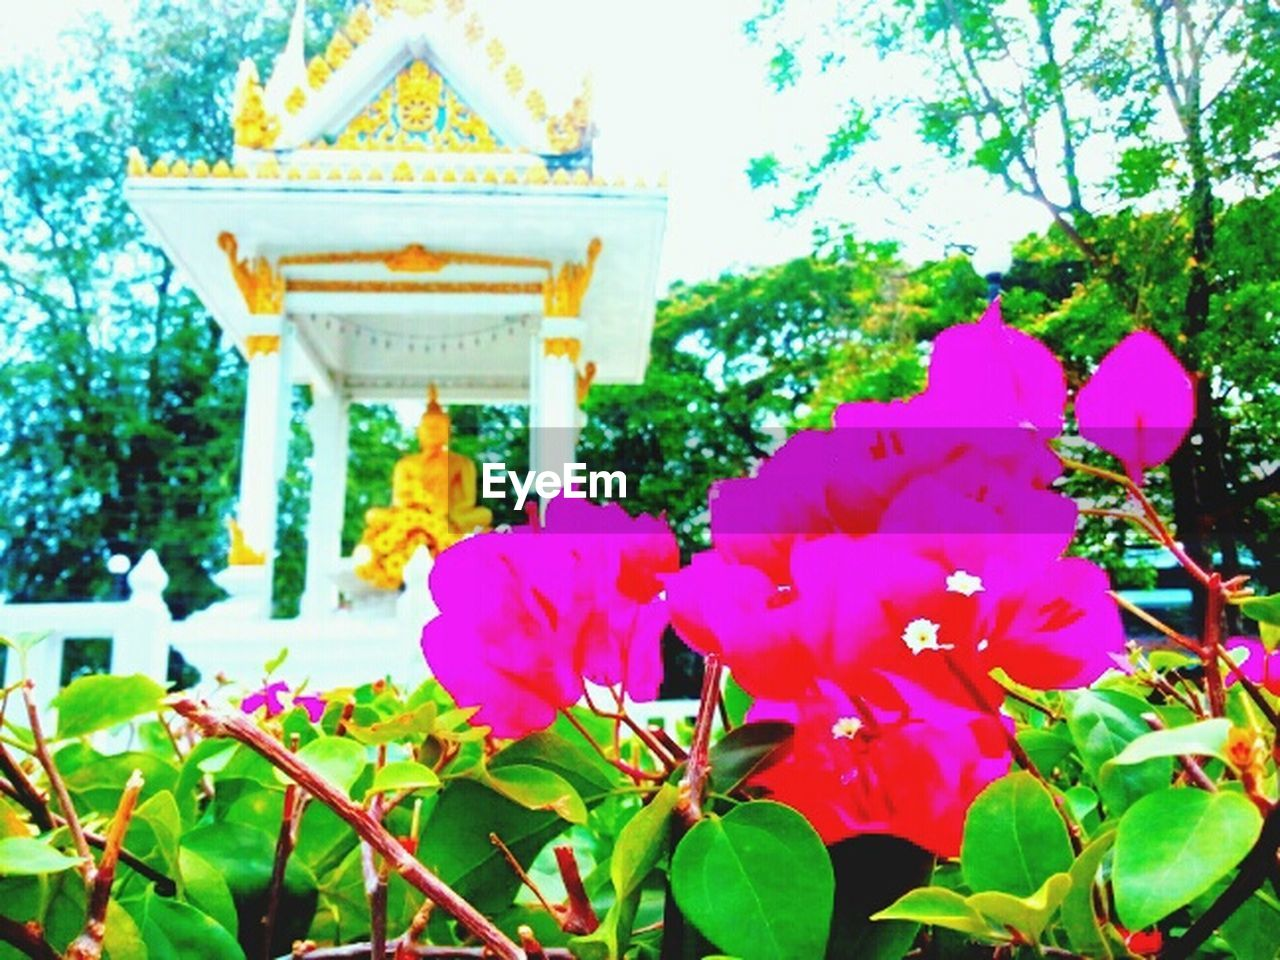 flower, outdoors, park - man made space, no people, nature, day, leaf, pink color, beauty in nature, building exterior, tree, architecture, city, close-up, sky